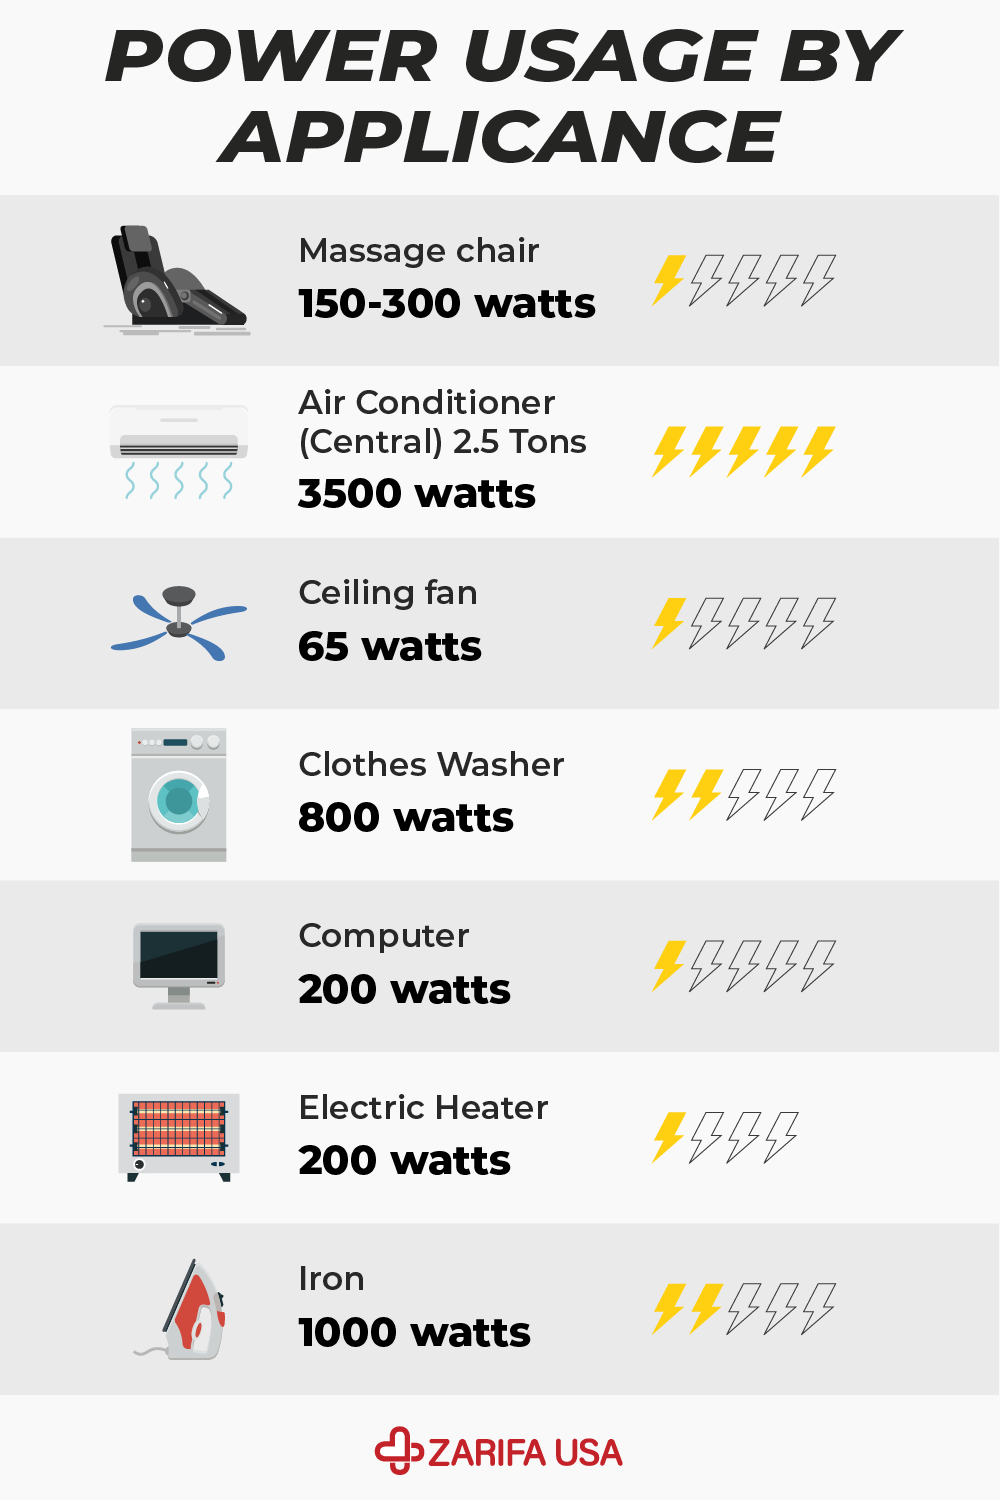 Power Usage By Appliance